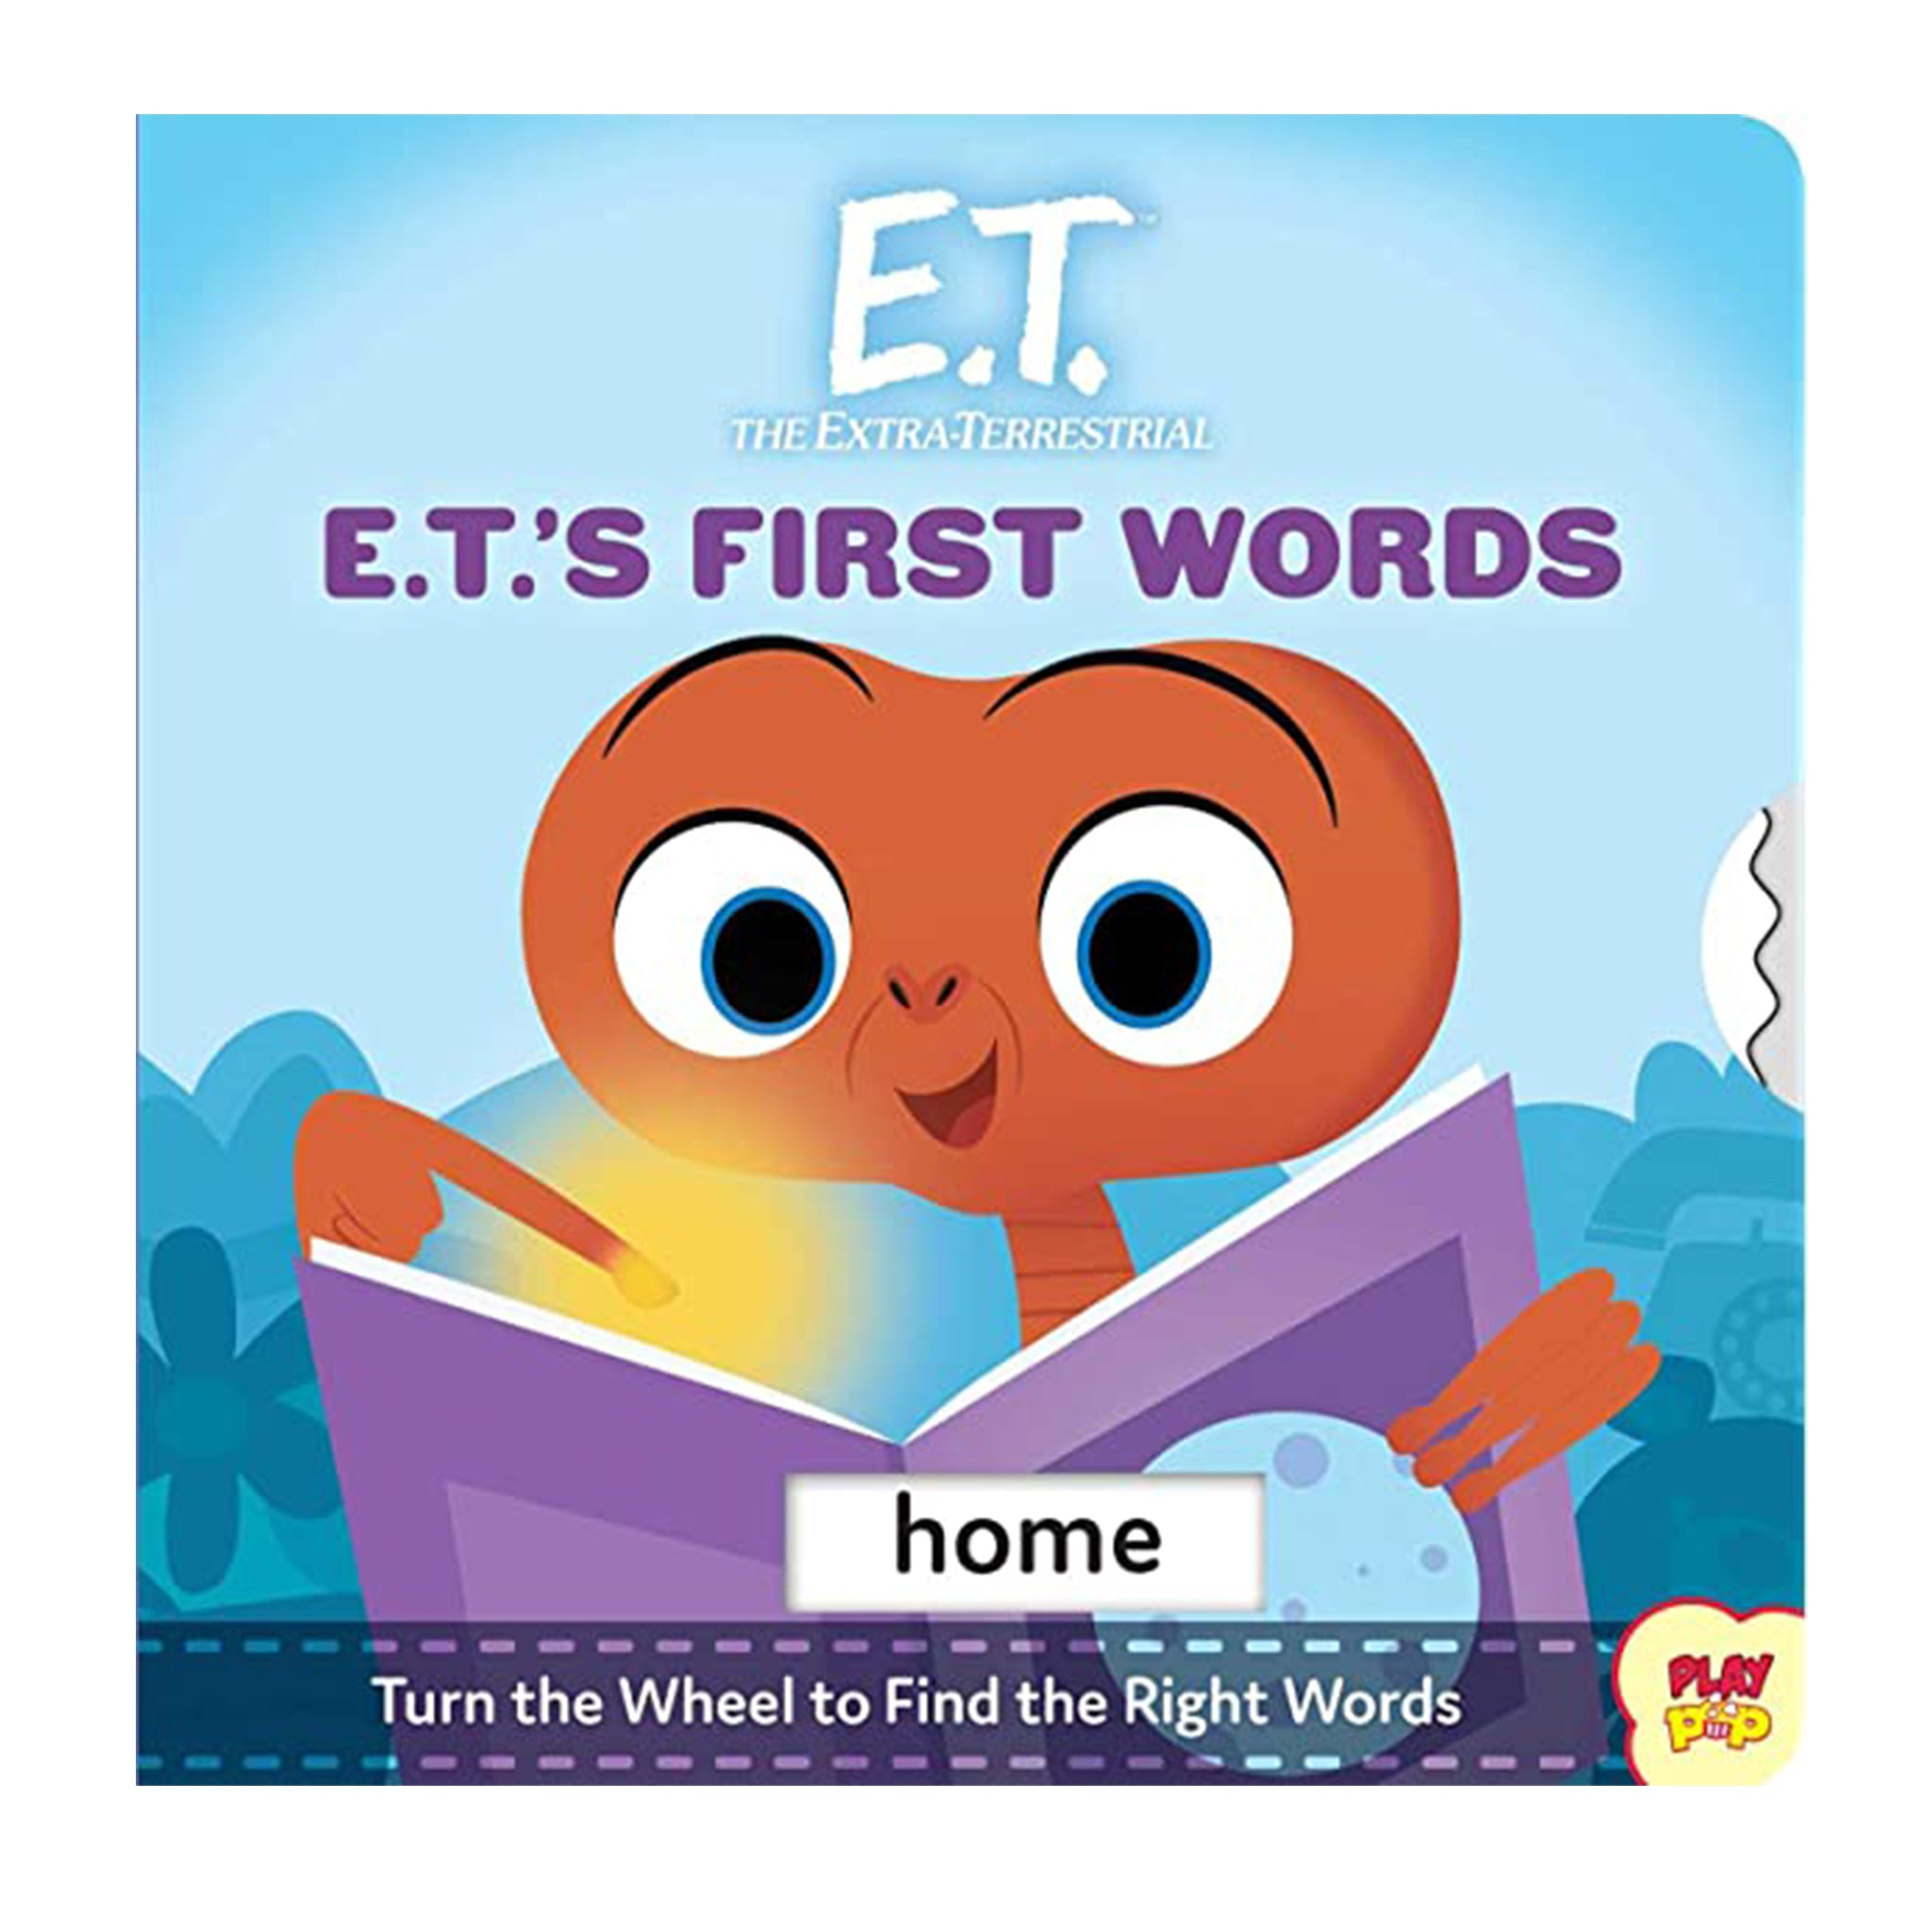 E.T.'s First Words